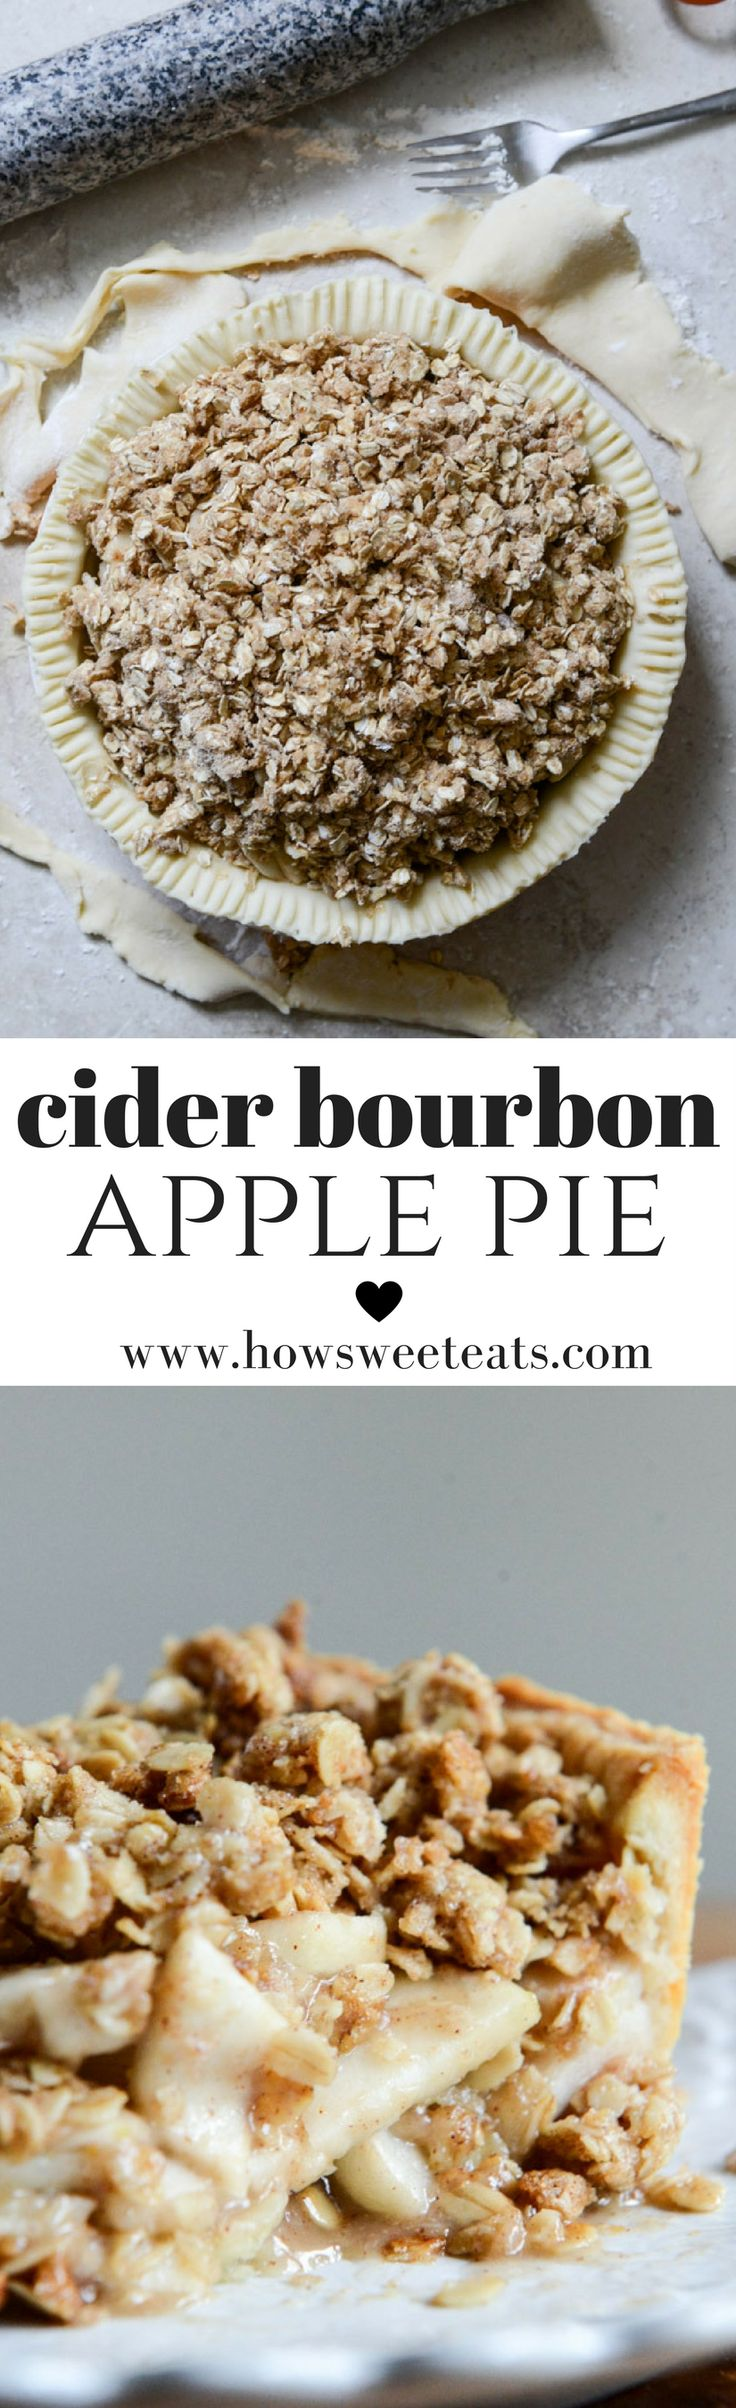 Cider Bourbon Apple Pie with Cookie Crumble Crust I howsweeteats.com @howsweeteats